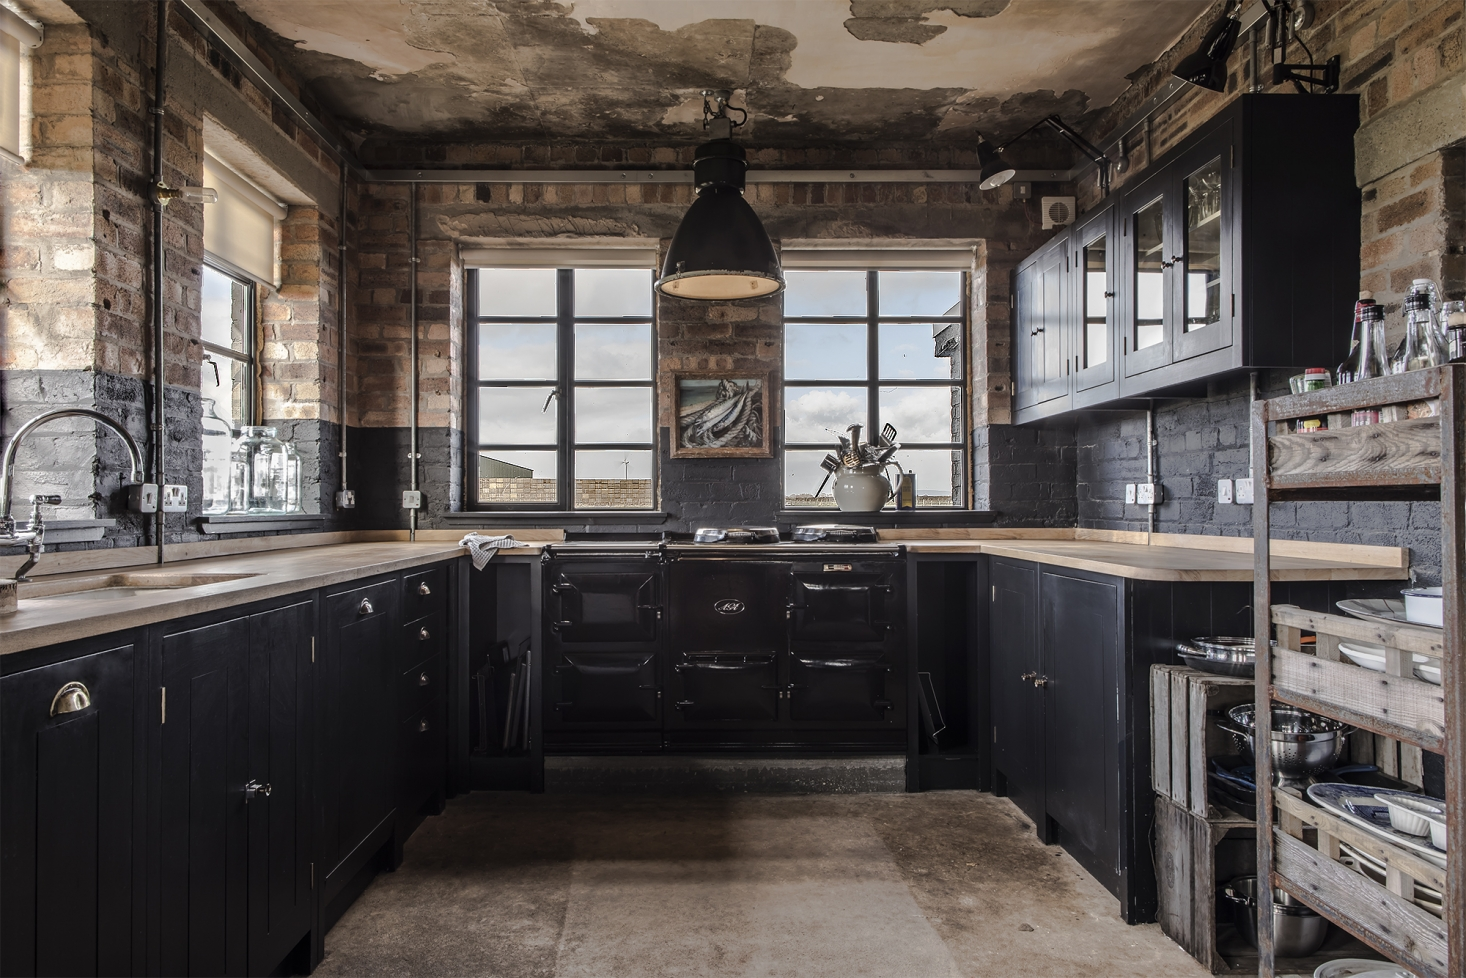 The recently installed kitchen—in what had been the officer's mess—is far from new looking. In keeping with the exterior, the couple went with a crepuscular matte charcoal for the cabinets, left the storm-ravaged brick walls exposed, and kept signs of 21st-century life largely under wraps.